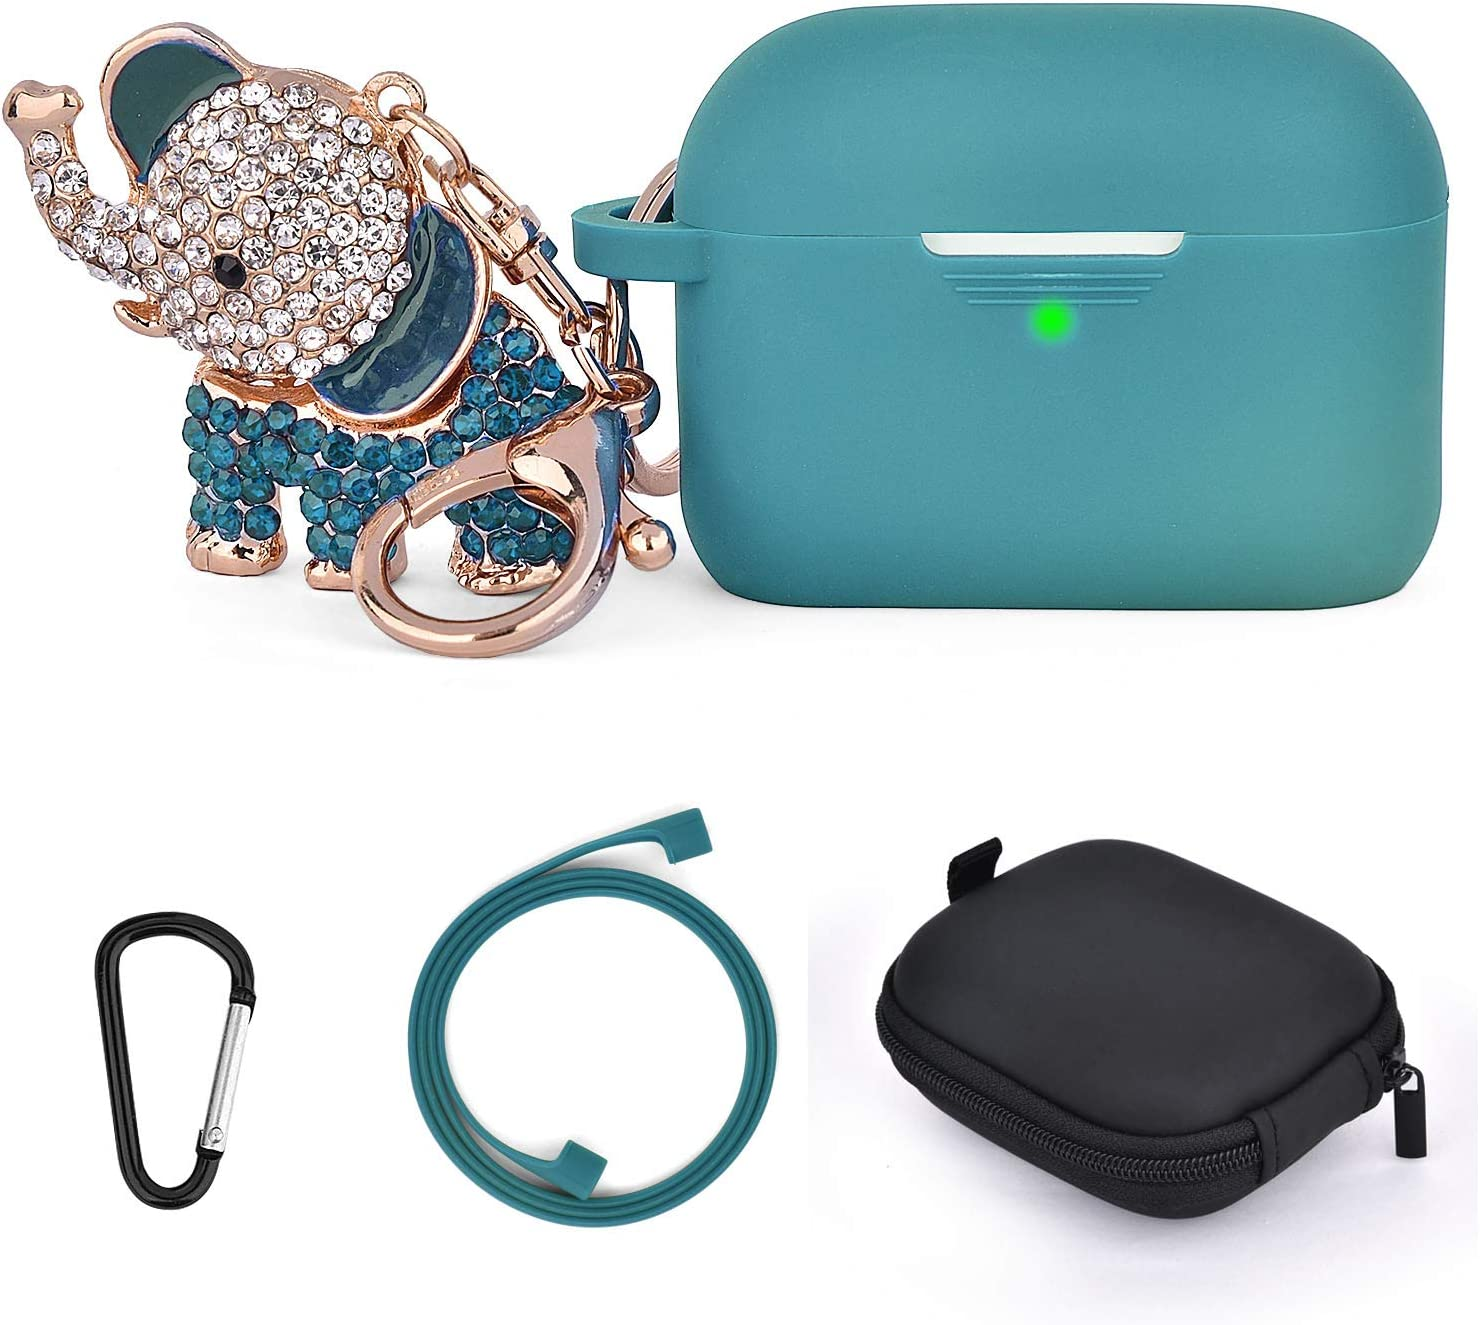 Airpods Pro Cases Keychain, TOROTOP 5 in 1 Airpod 3 Silicone Protective Case with Bling Elephant Keychain/Storage Box Compatible for Apple Airpods Pro Charging Case (Turquoise)